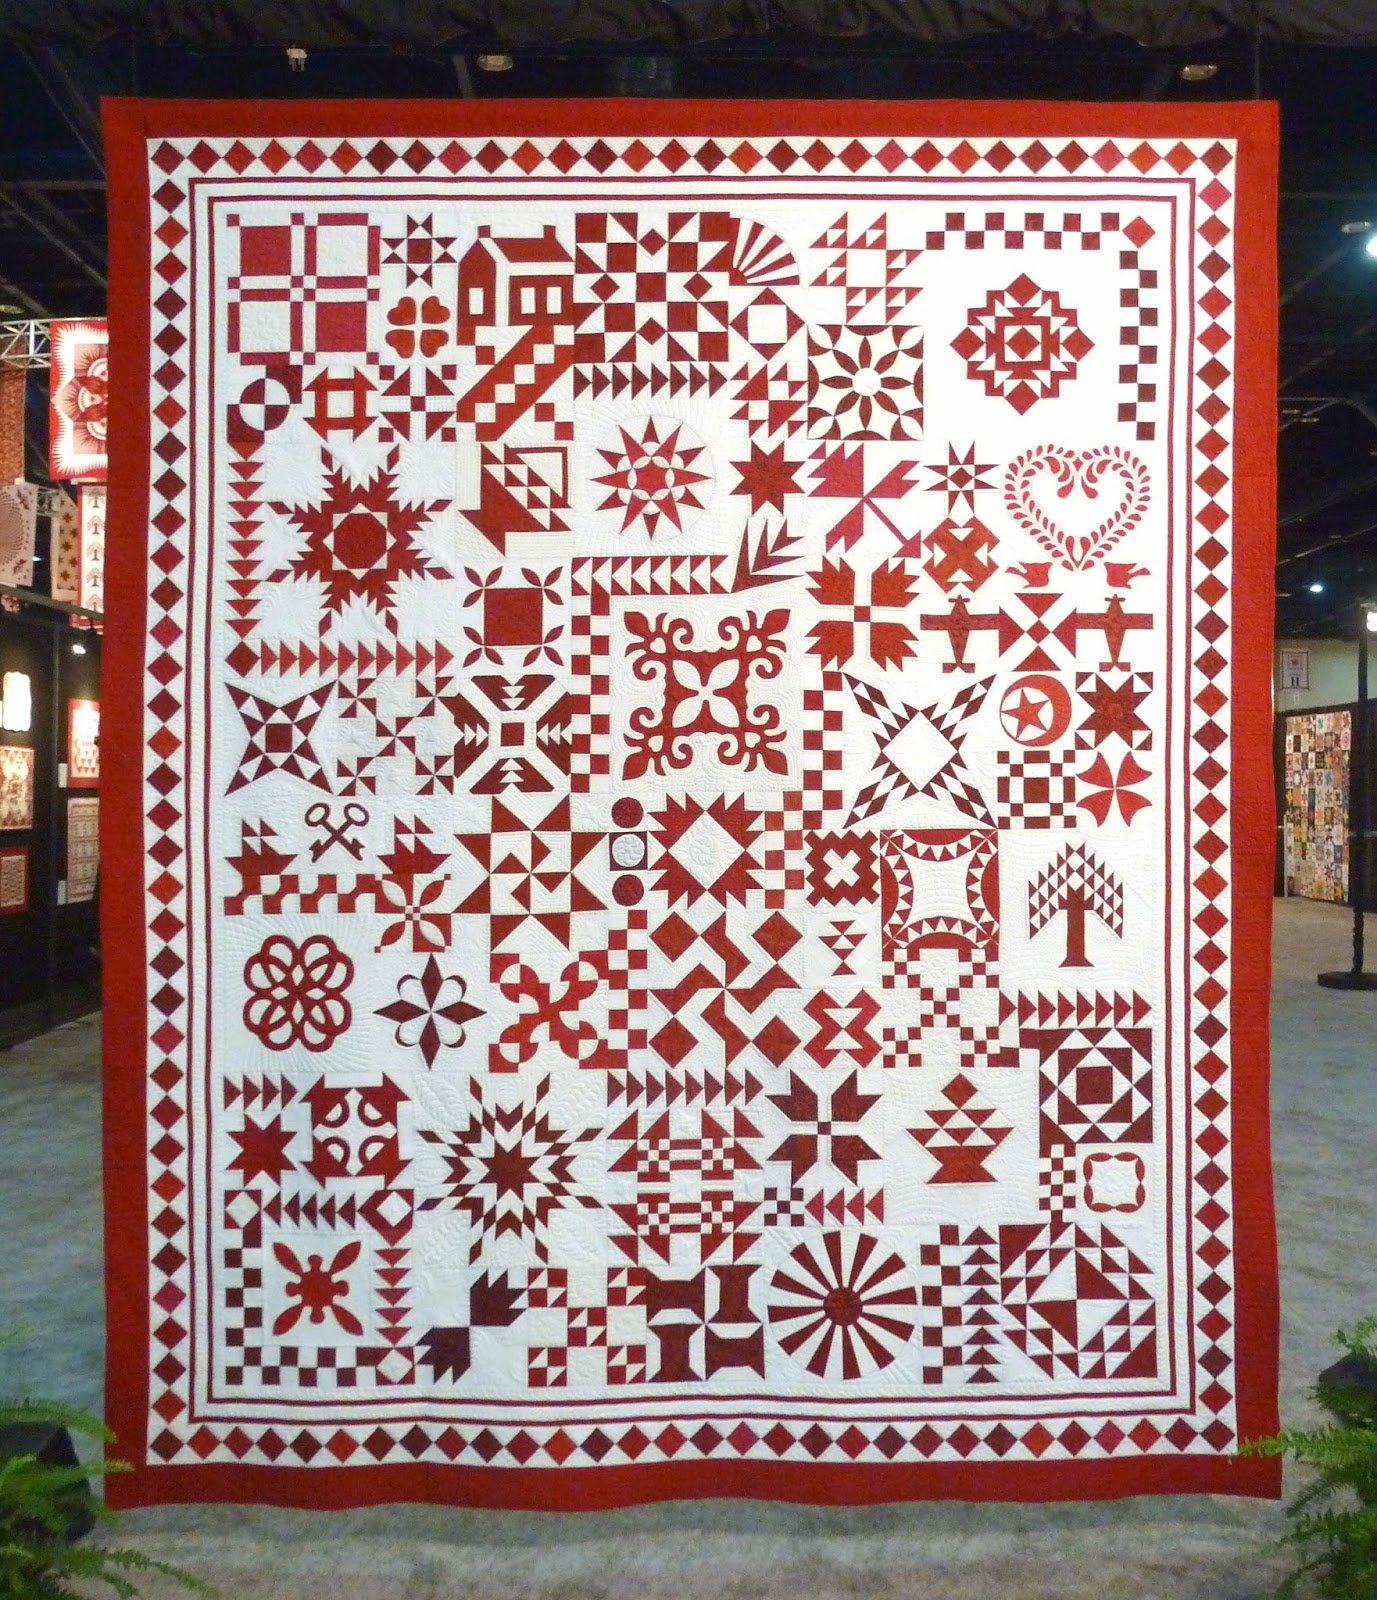 Come Quilt (Sue Garman): The Quilts and Houston - and more : houston quilting show - Adamdwight.com